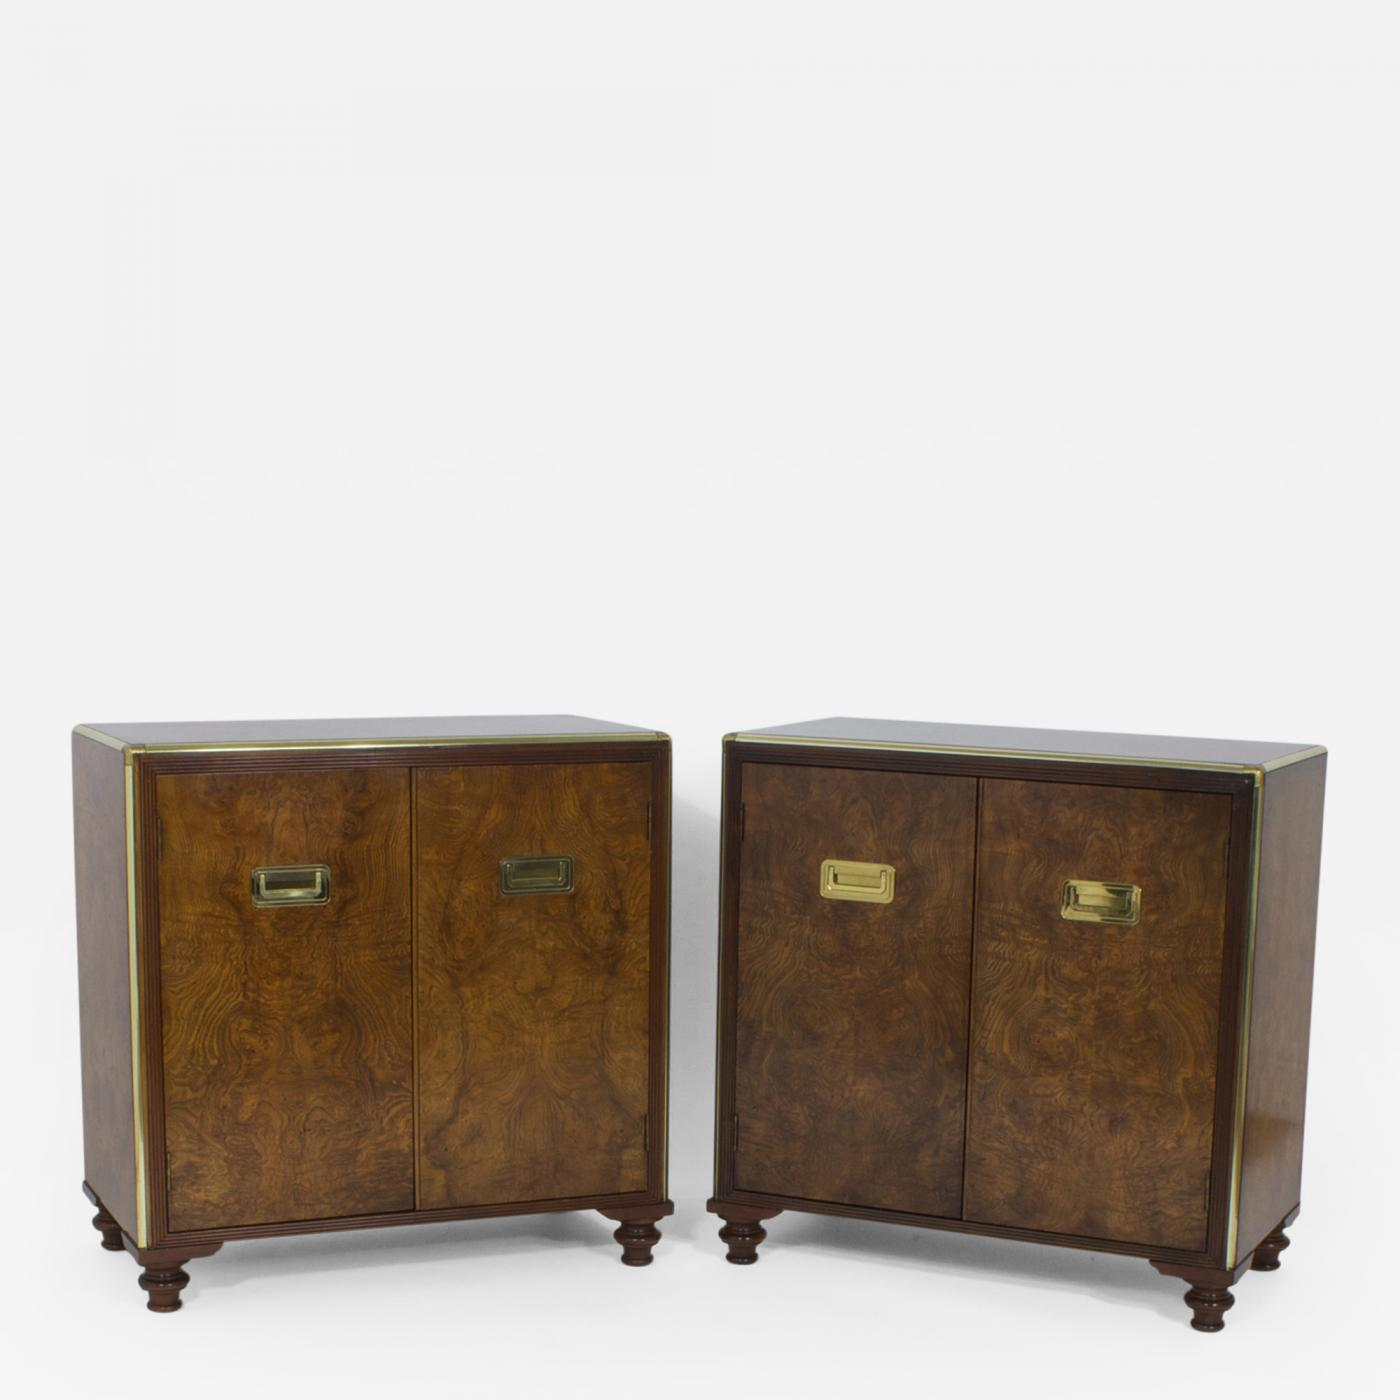 Baker furniture company pair of campaign style burl wood for Baker furniture